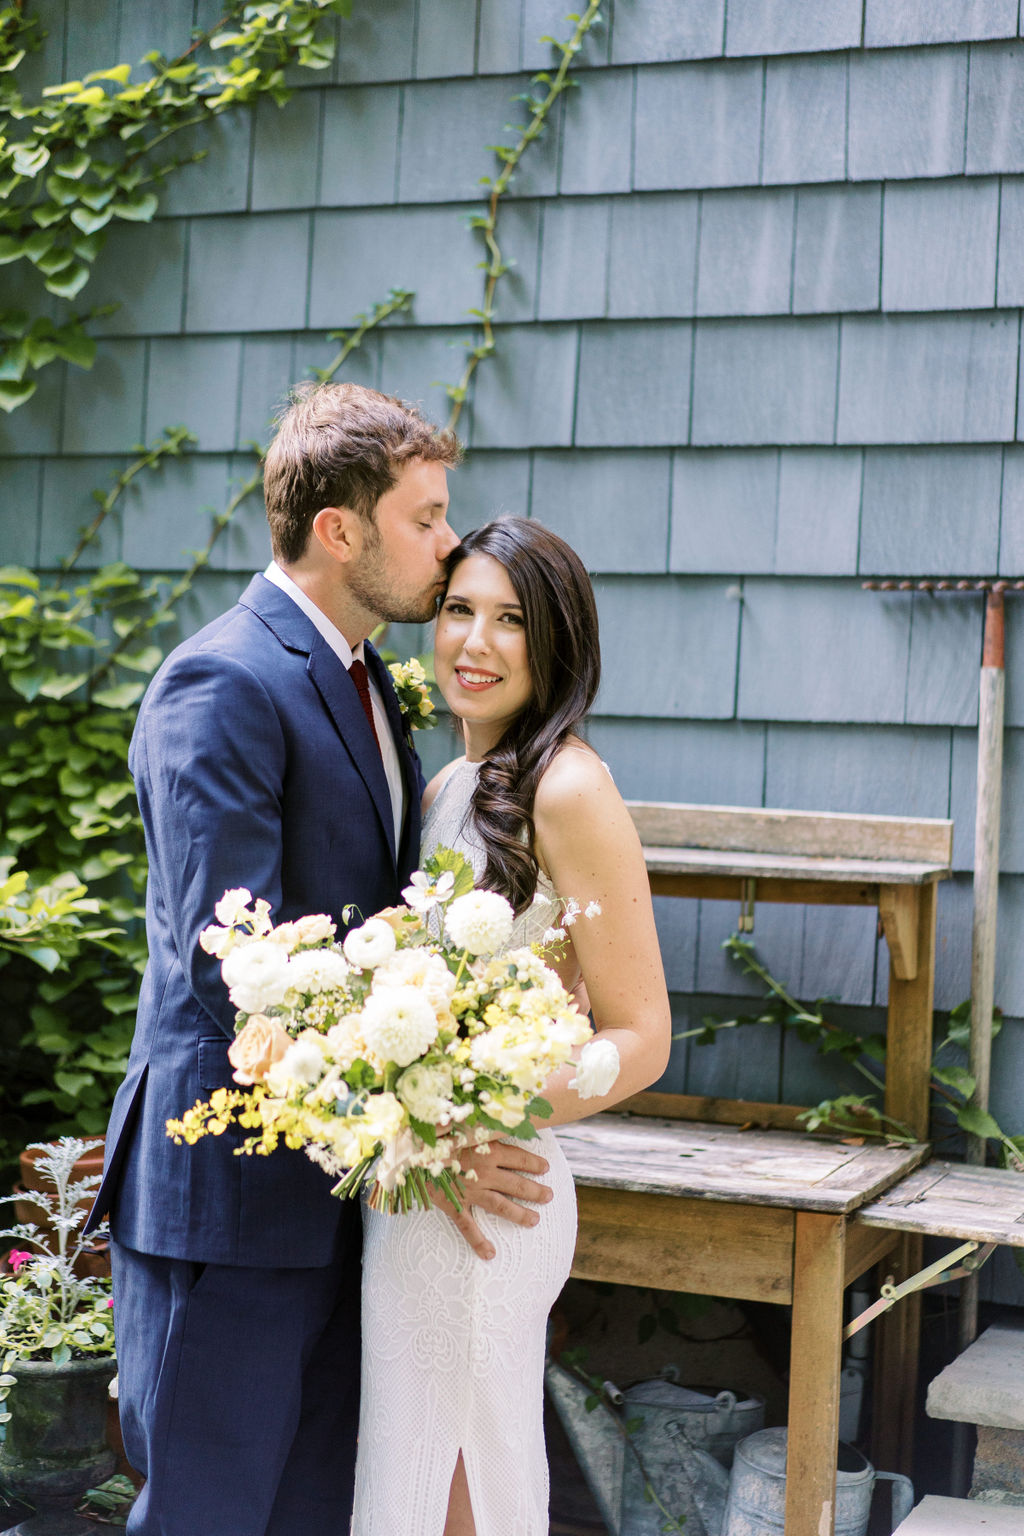 groom kisses bride while she smiles holding floral bouquet